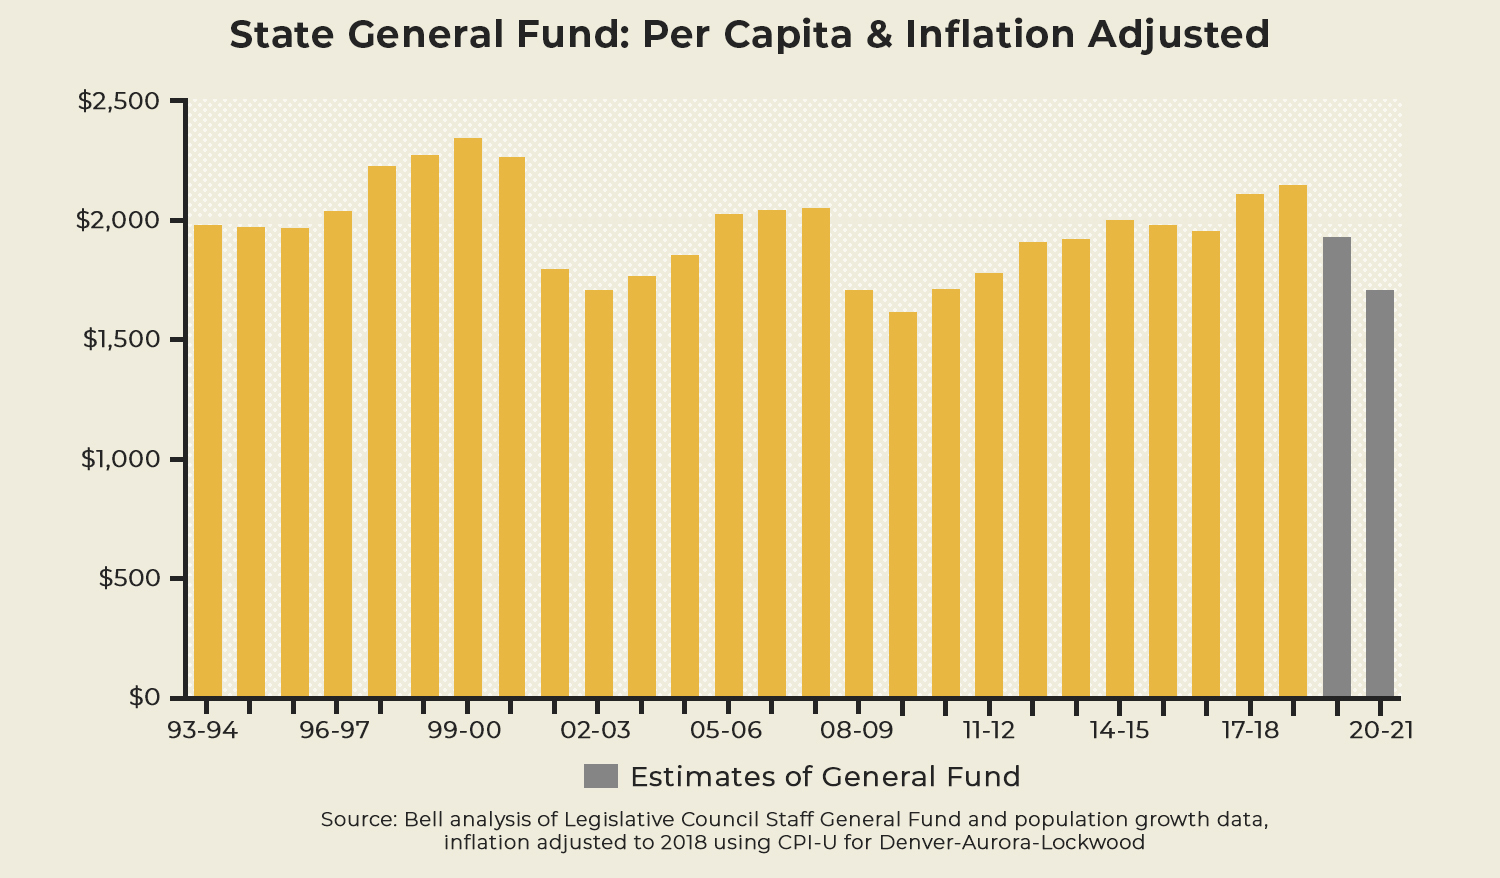 General Fund Per Capita & Inflation Adjusted